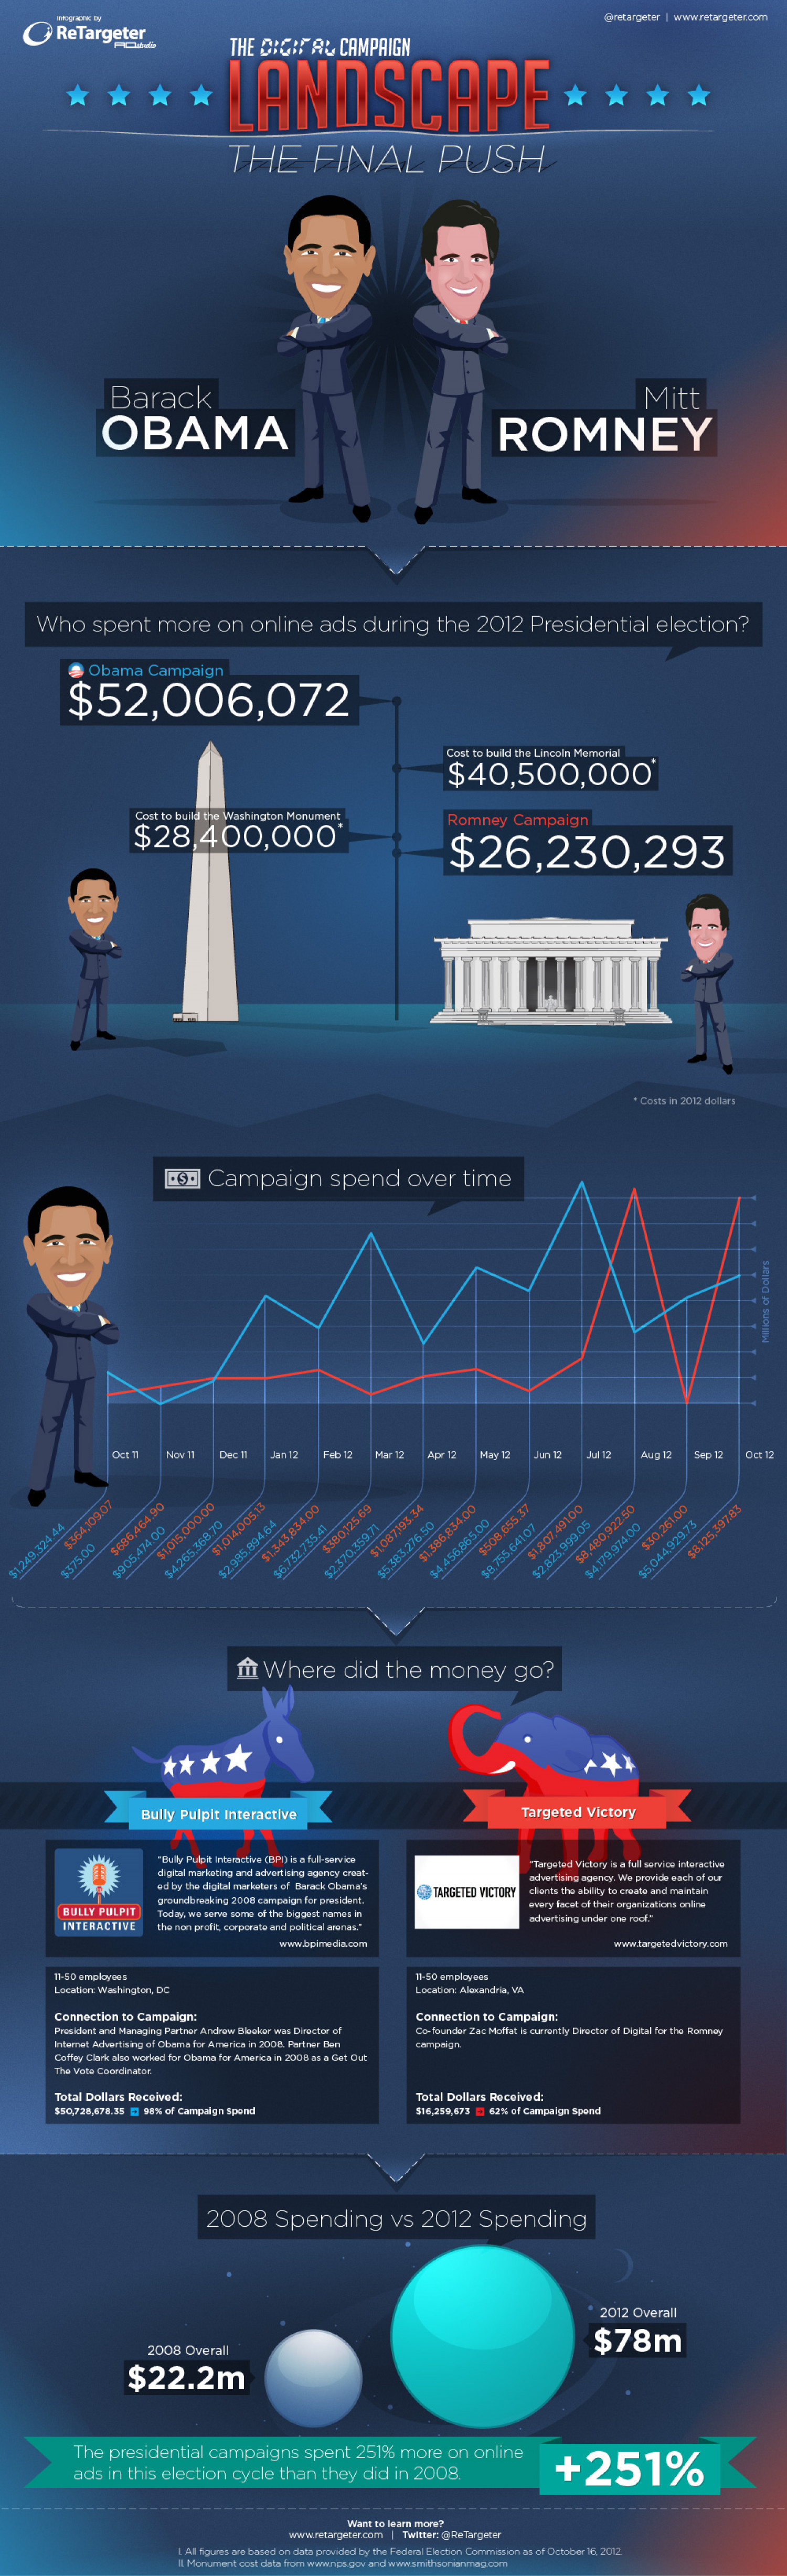 The Digital Campaign Landscape: The Final Push Infographic